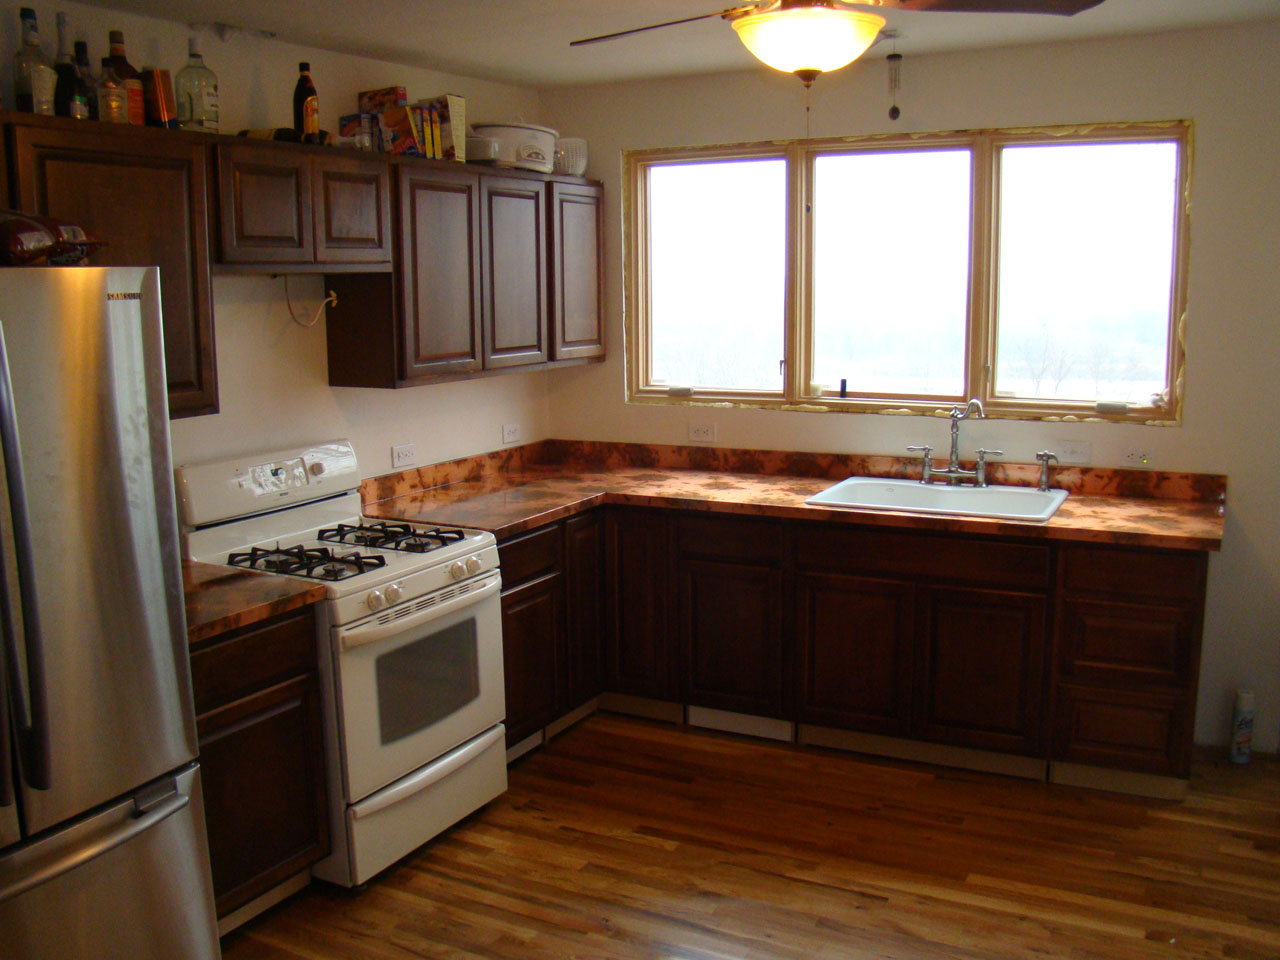 copper kitchen countertops formica cabinets the and diy